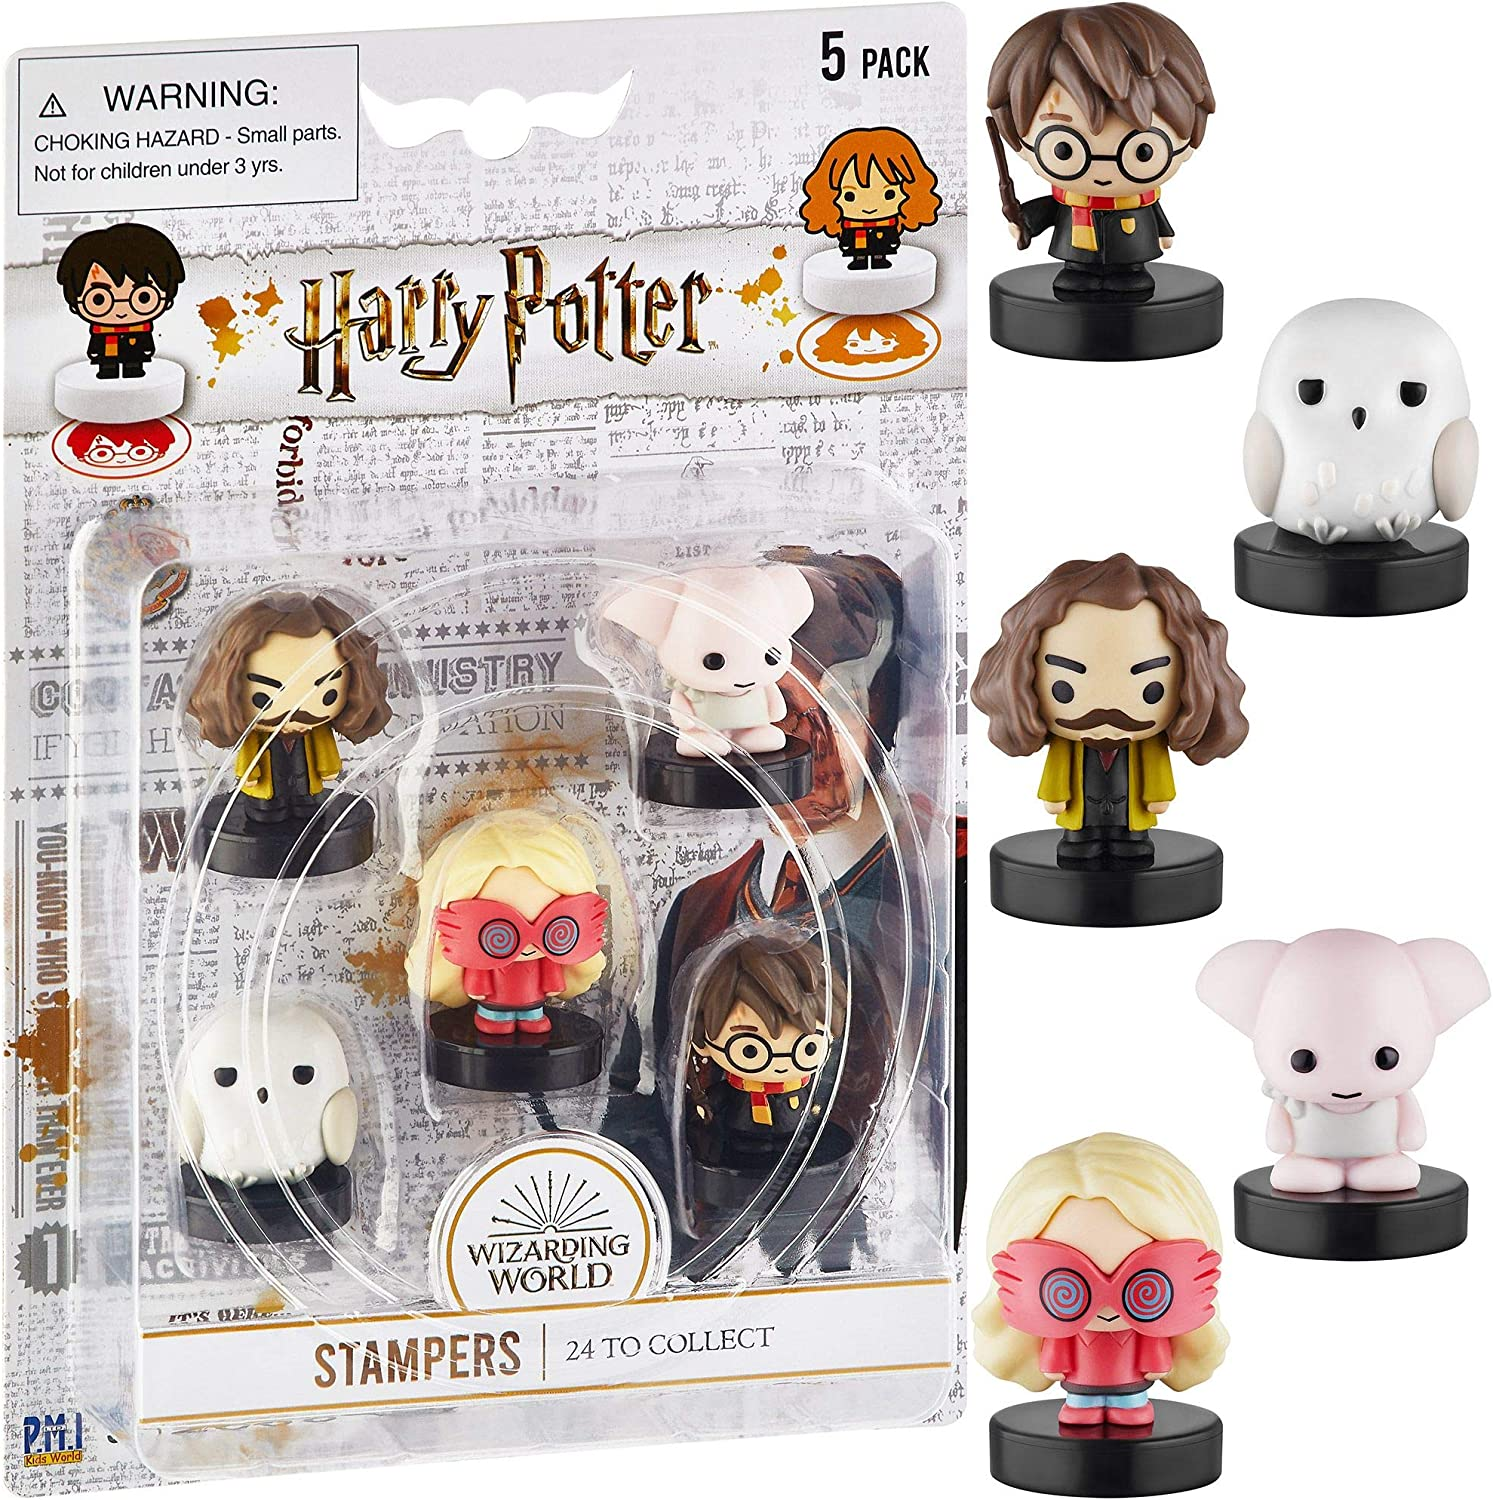 Self-Inking Harry Potter Stampers, Set of 5 – Harry Potter Gifts, Collectables, Party Decor, Cake Toppers – Harry Potter, Dobby, Luna Lovegood, Hedwig and More by PMI, 2.5 in. Tall